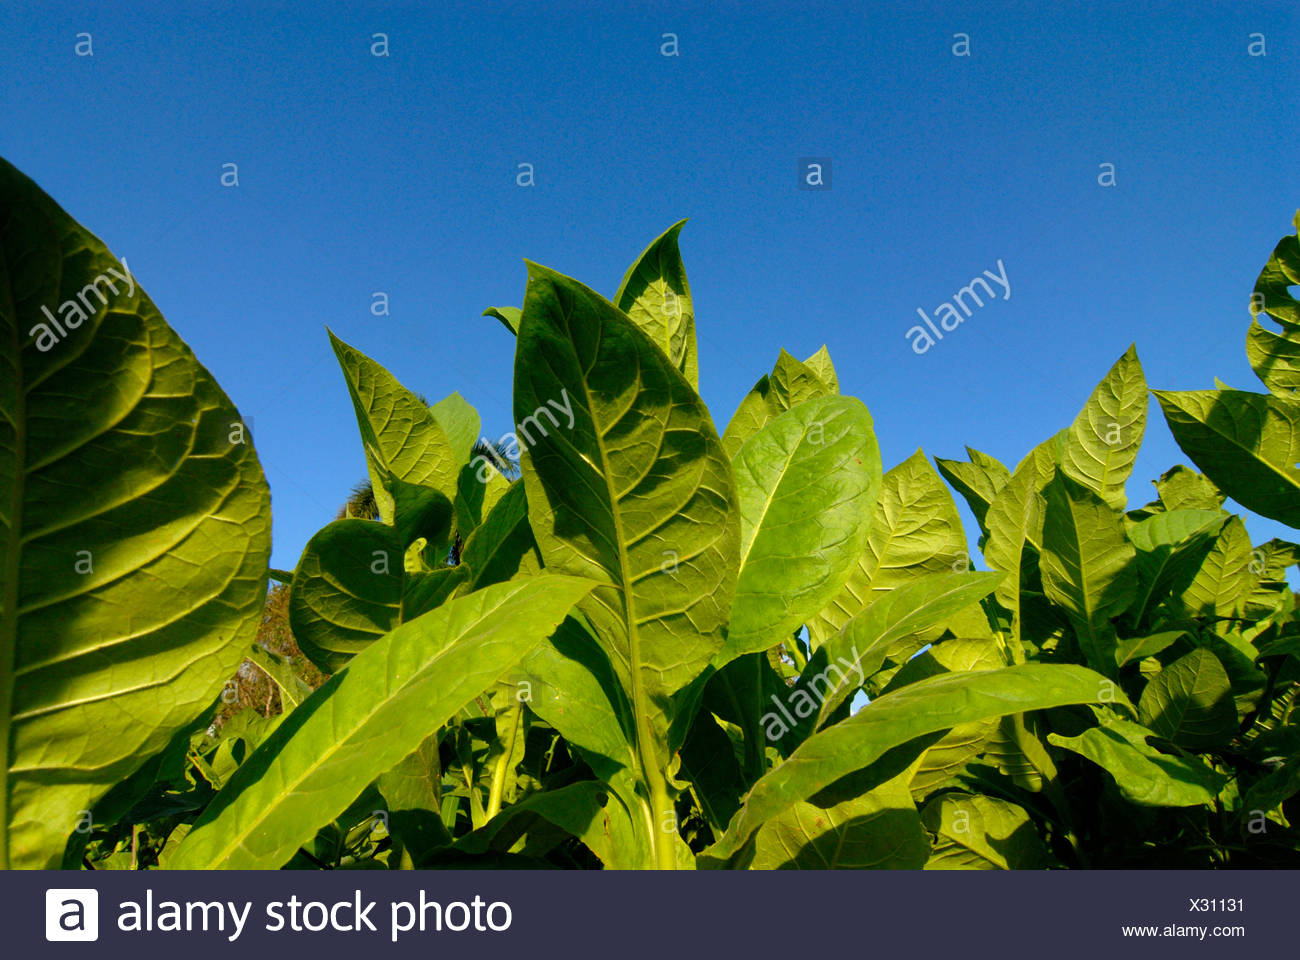 Tobacco leaves, tobacco field in Pinar del Rio, Cuba, Caribbean - Stock Image